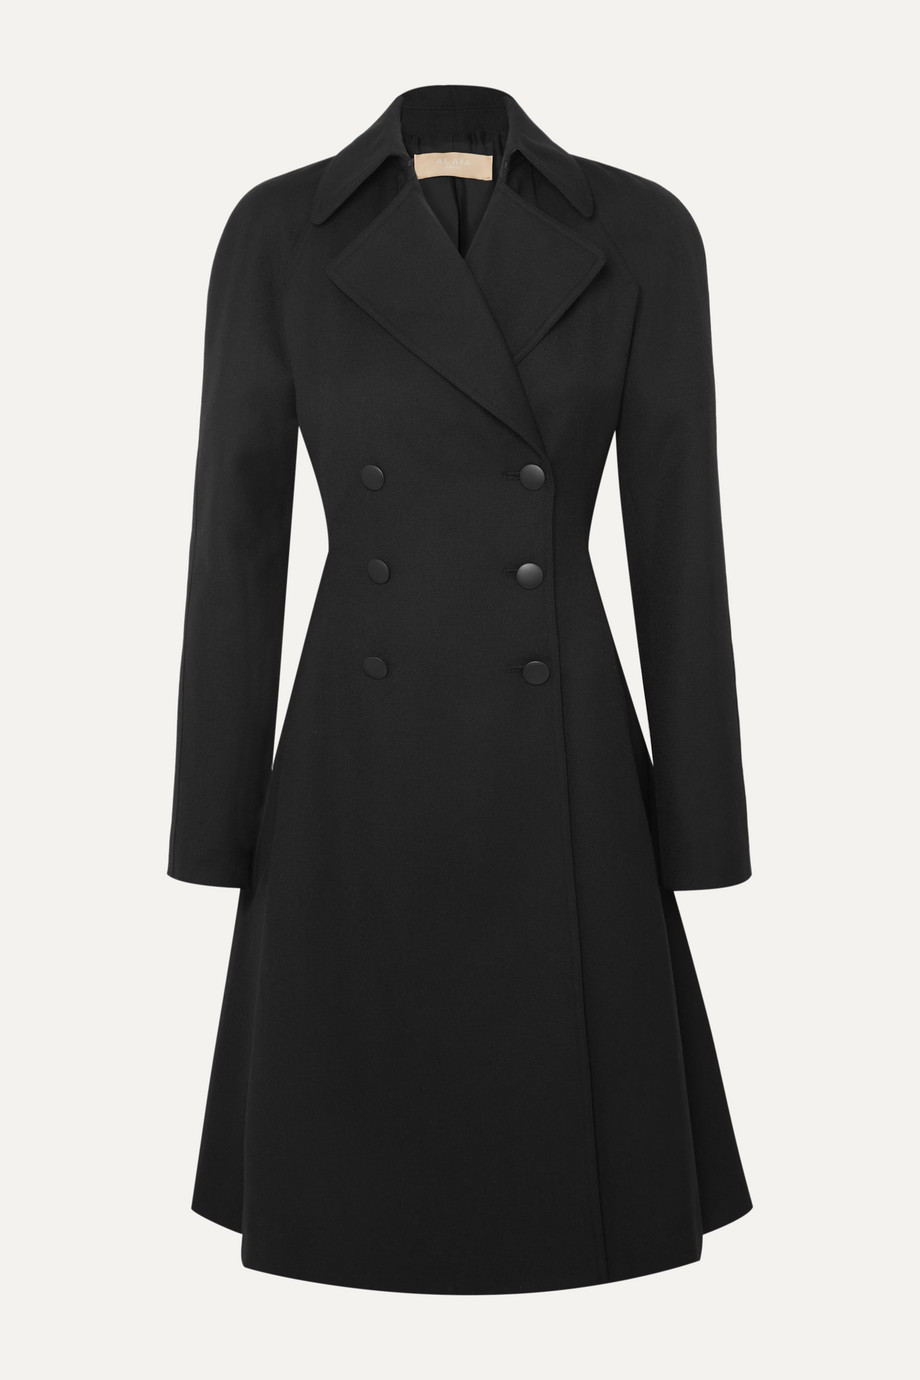 Alaïa Double-breasted wool-gabardine coat